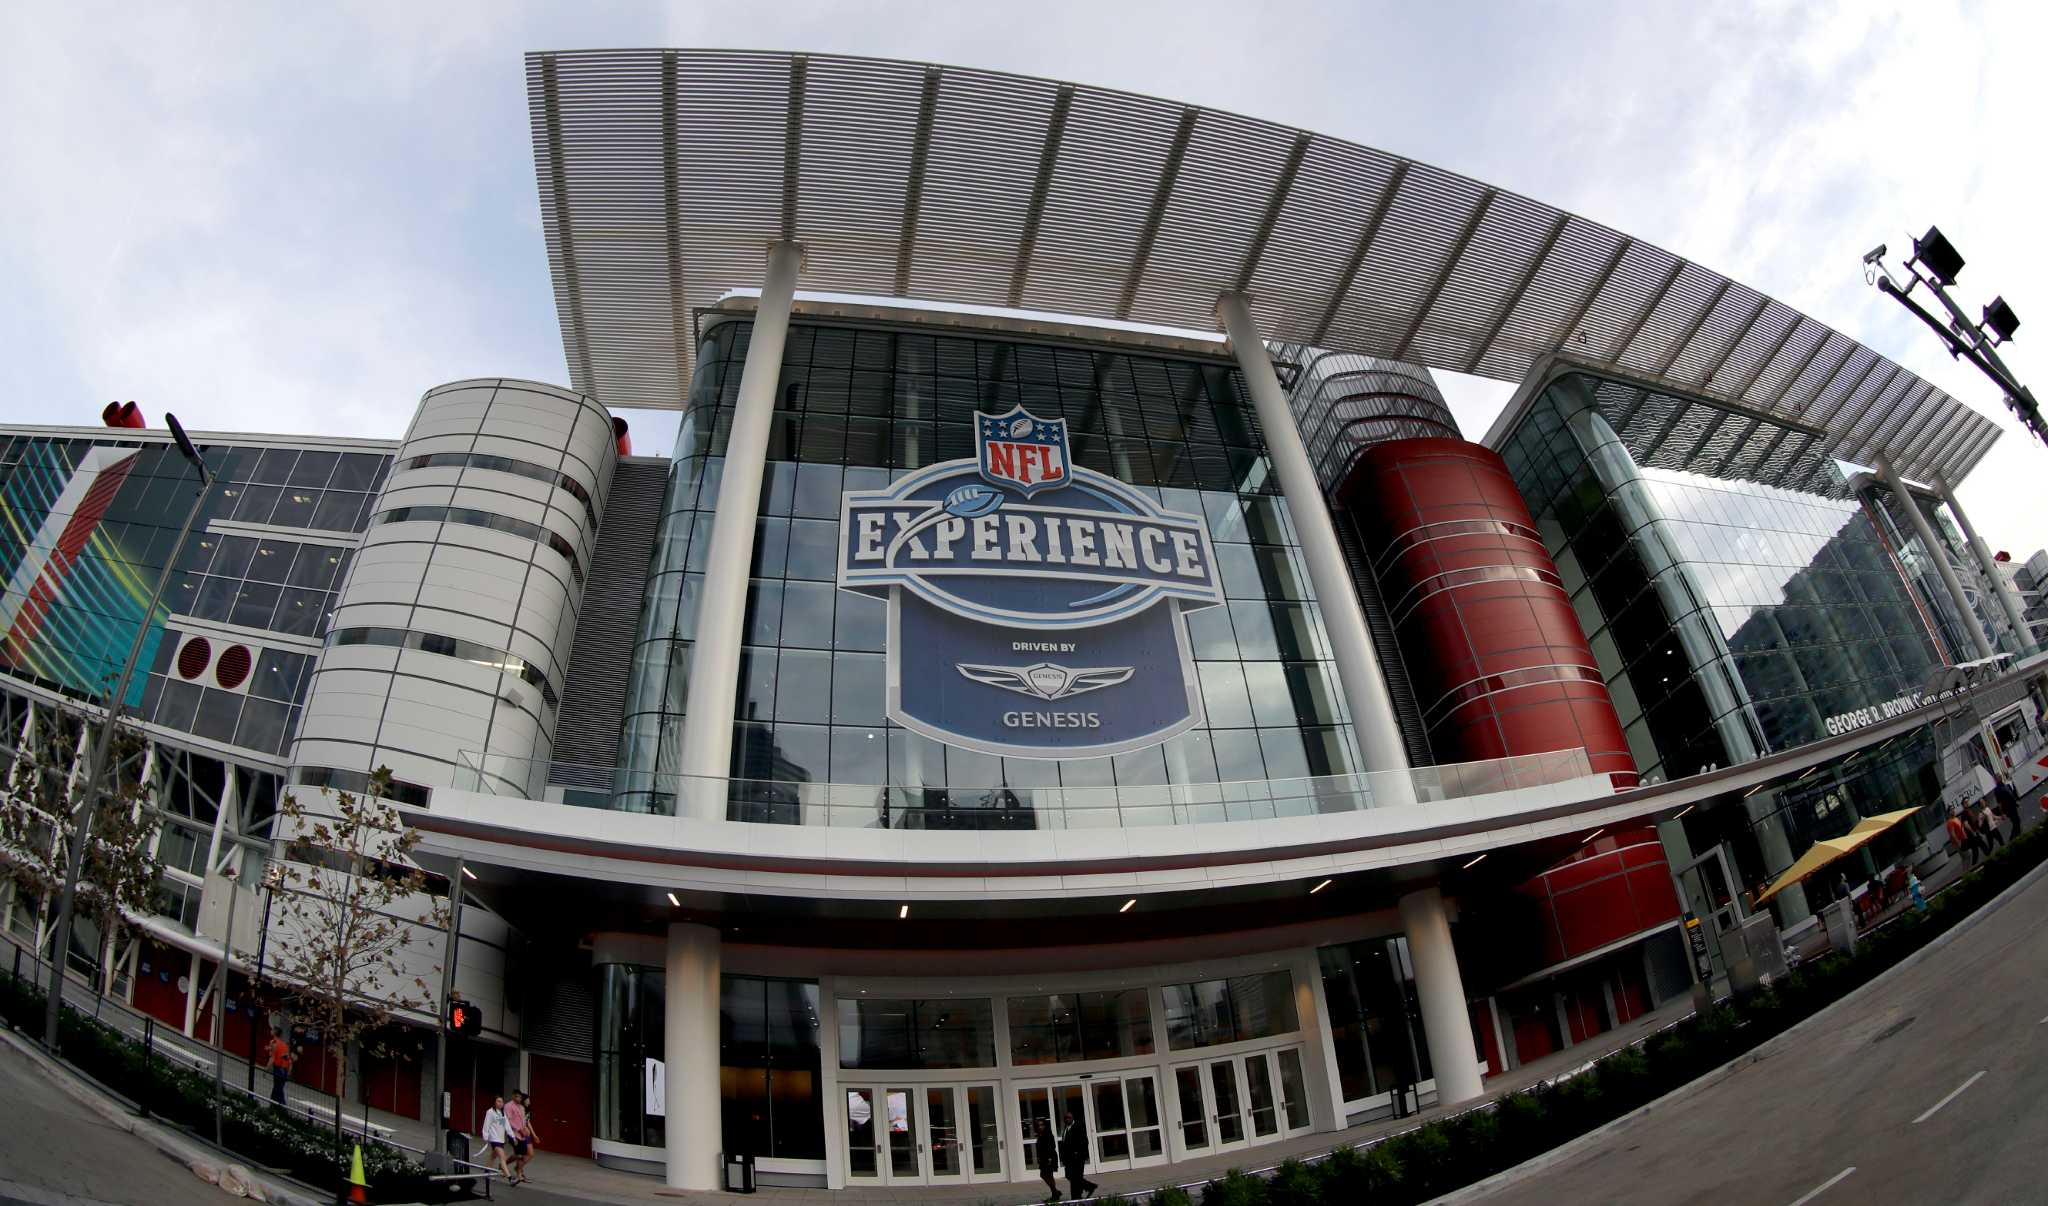 Read what the NFL asked Houston to do to land the Super Bowl